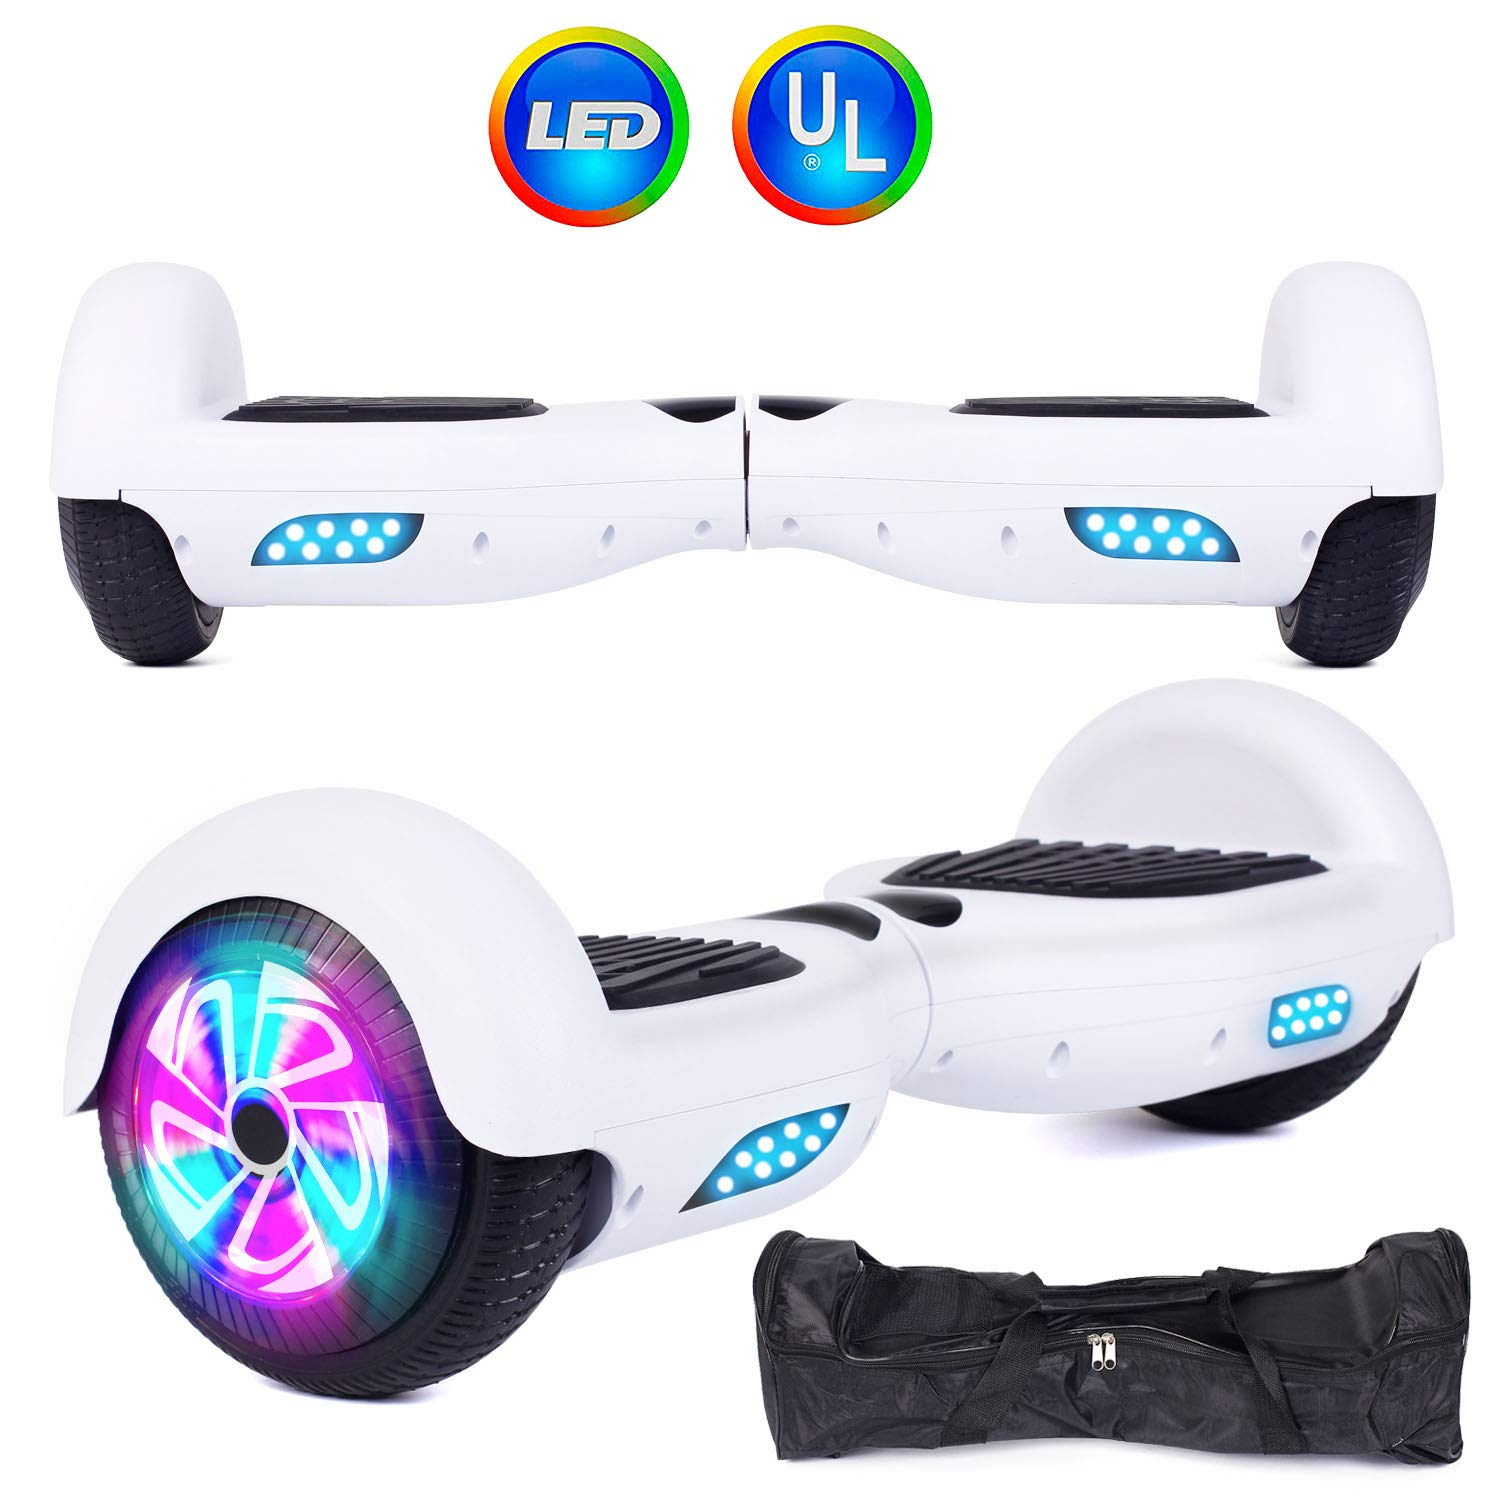 Felimoda Self Balancing Hoverboards with LED Light and Carrying Case,6.5 Inch Two Wheel Smart Electric Scooter for Kids and Adults-UL2272 Certified (White)